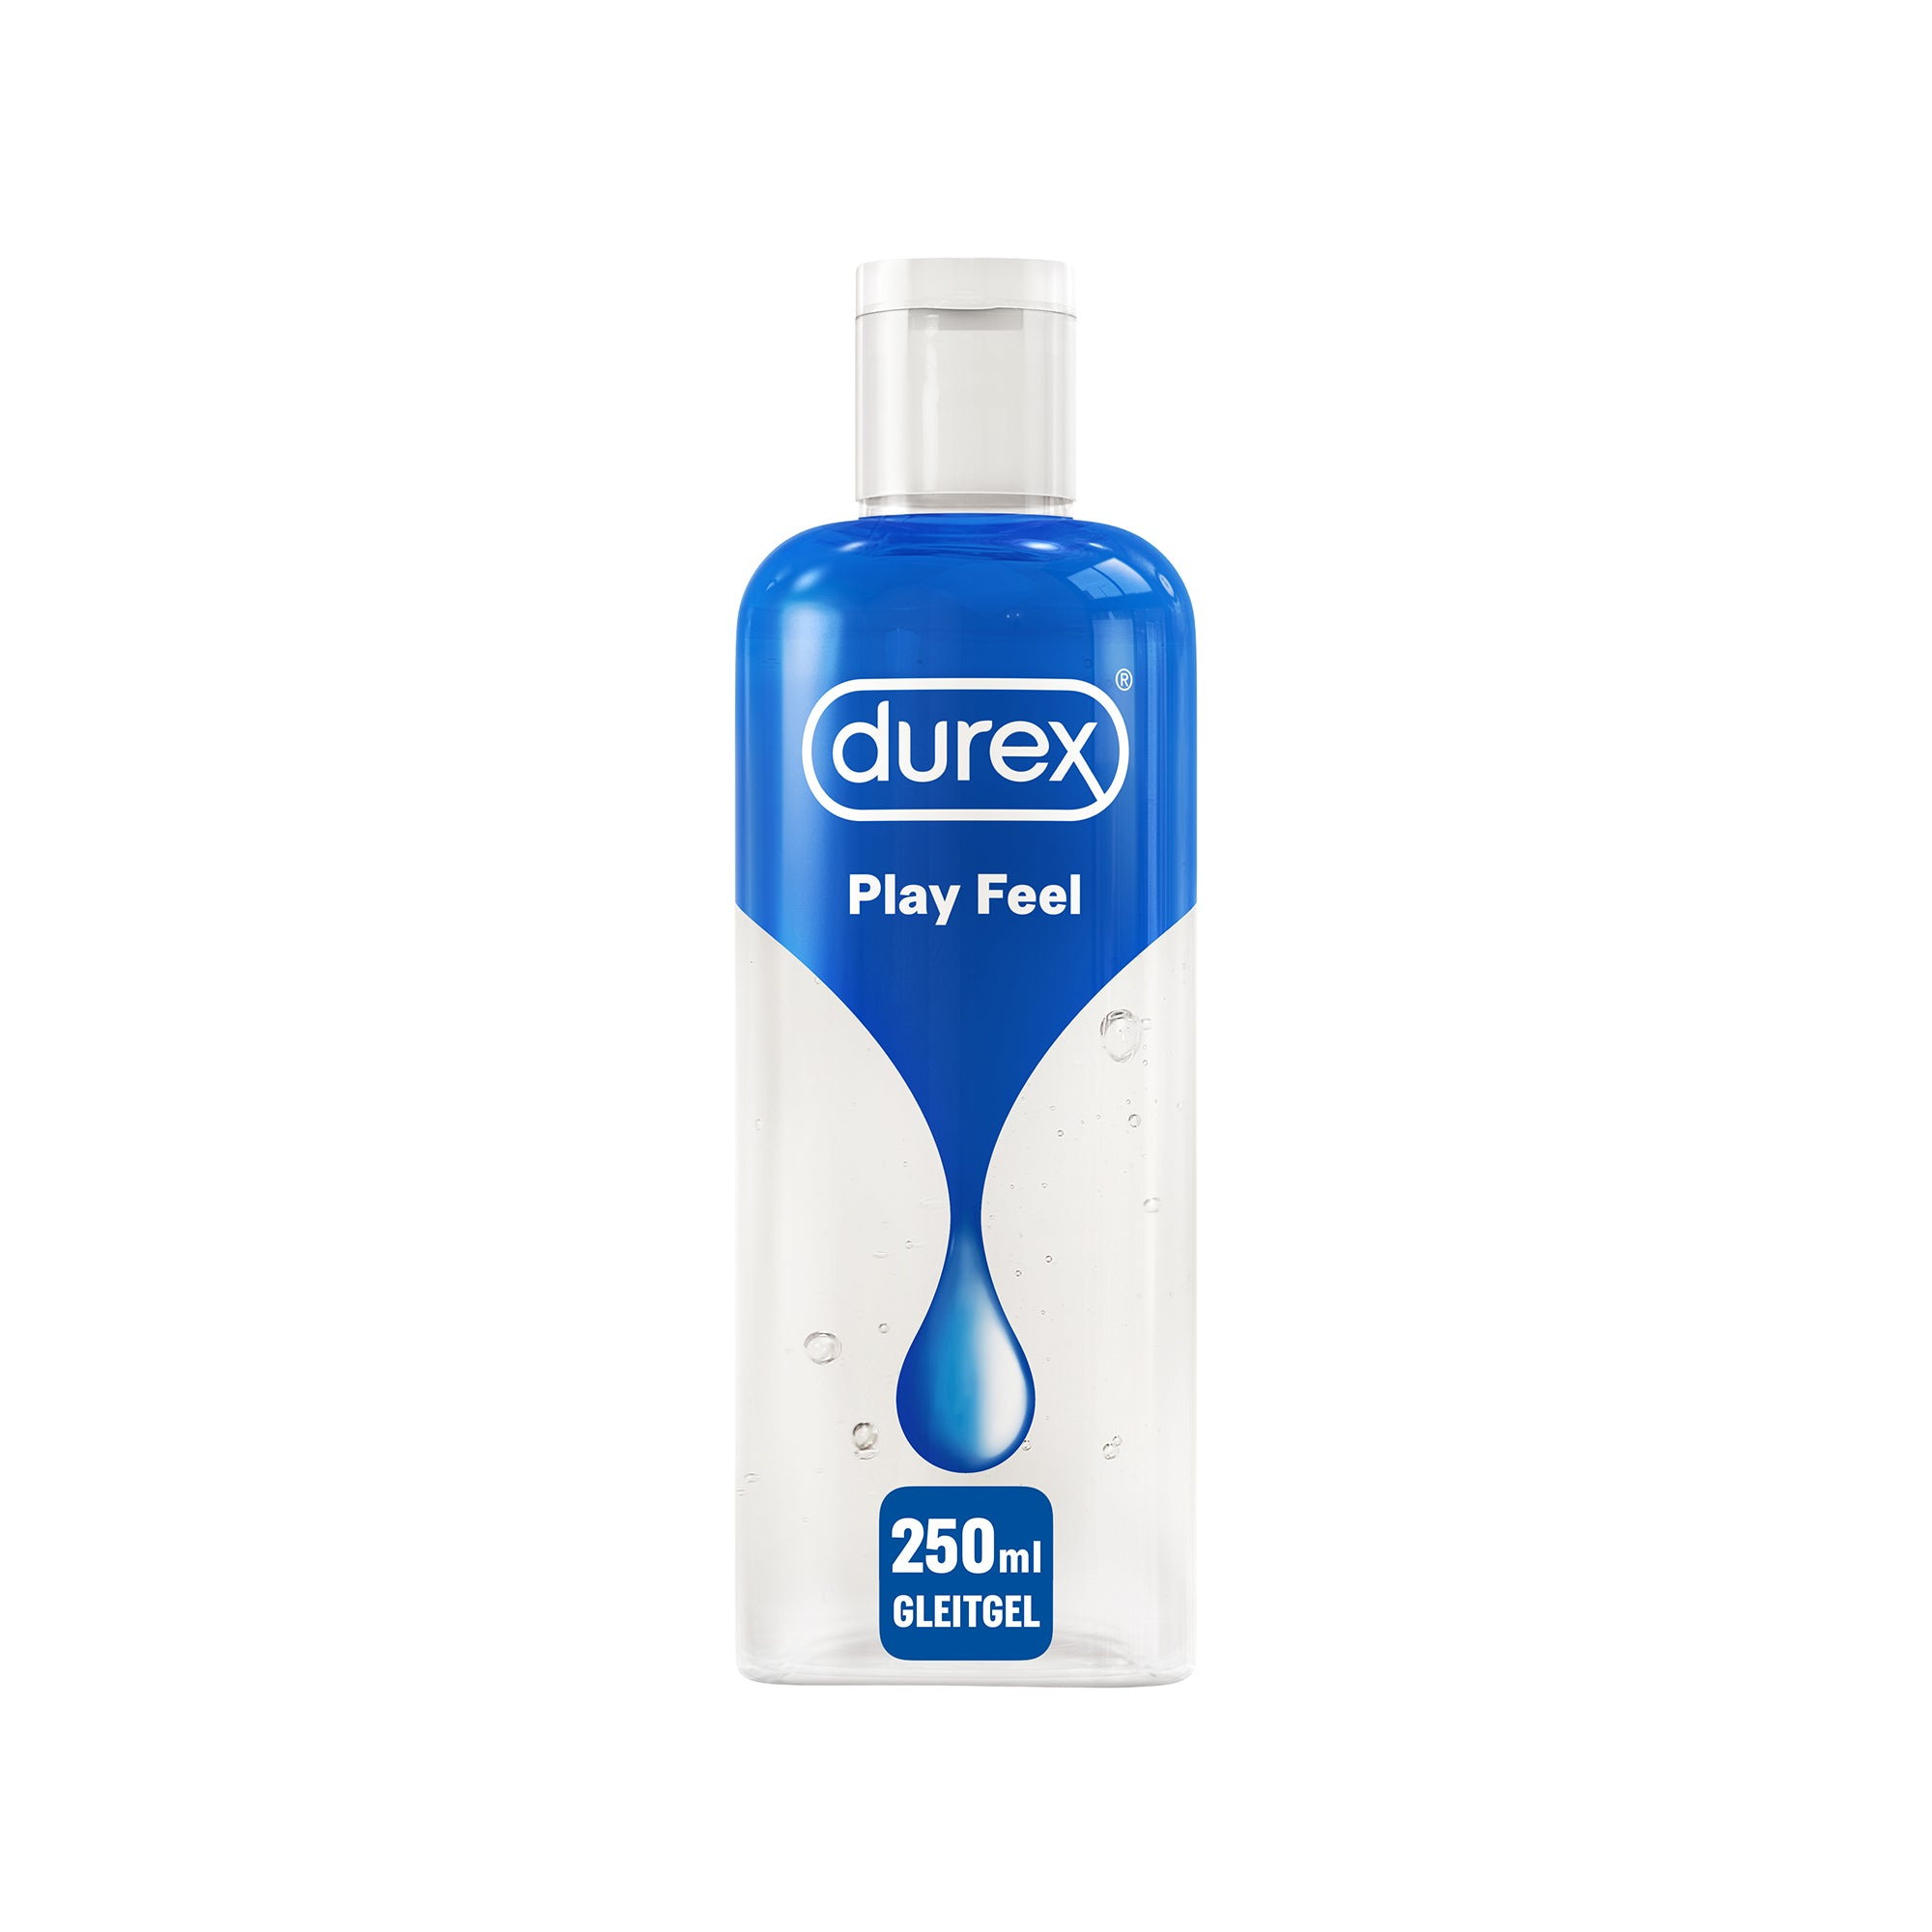 Durex Play Feel Gleitgel, 250ml